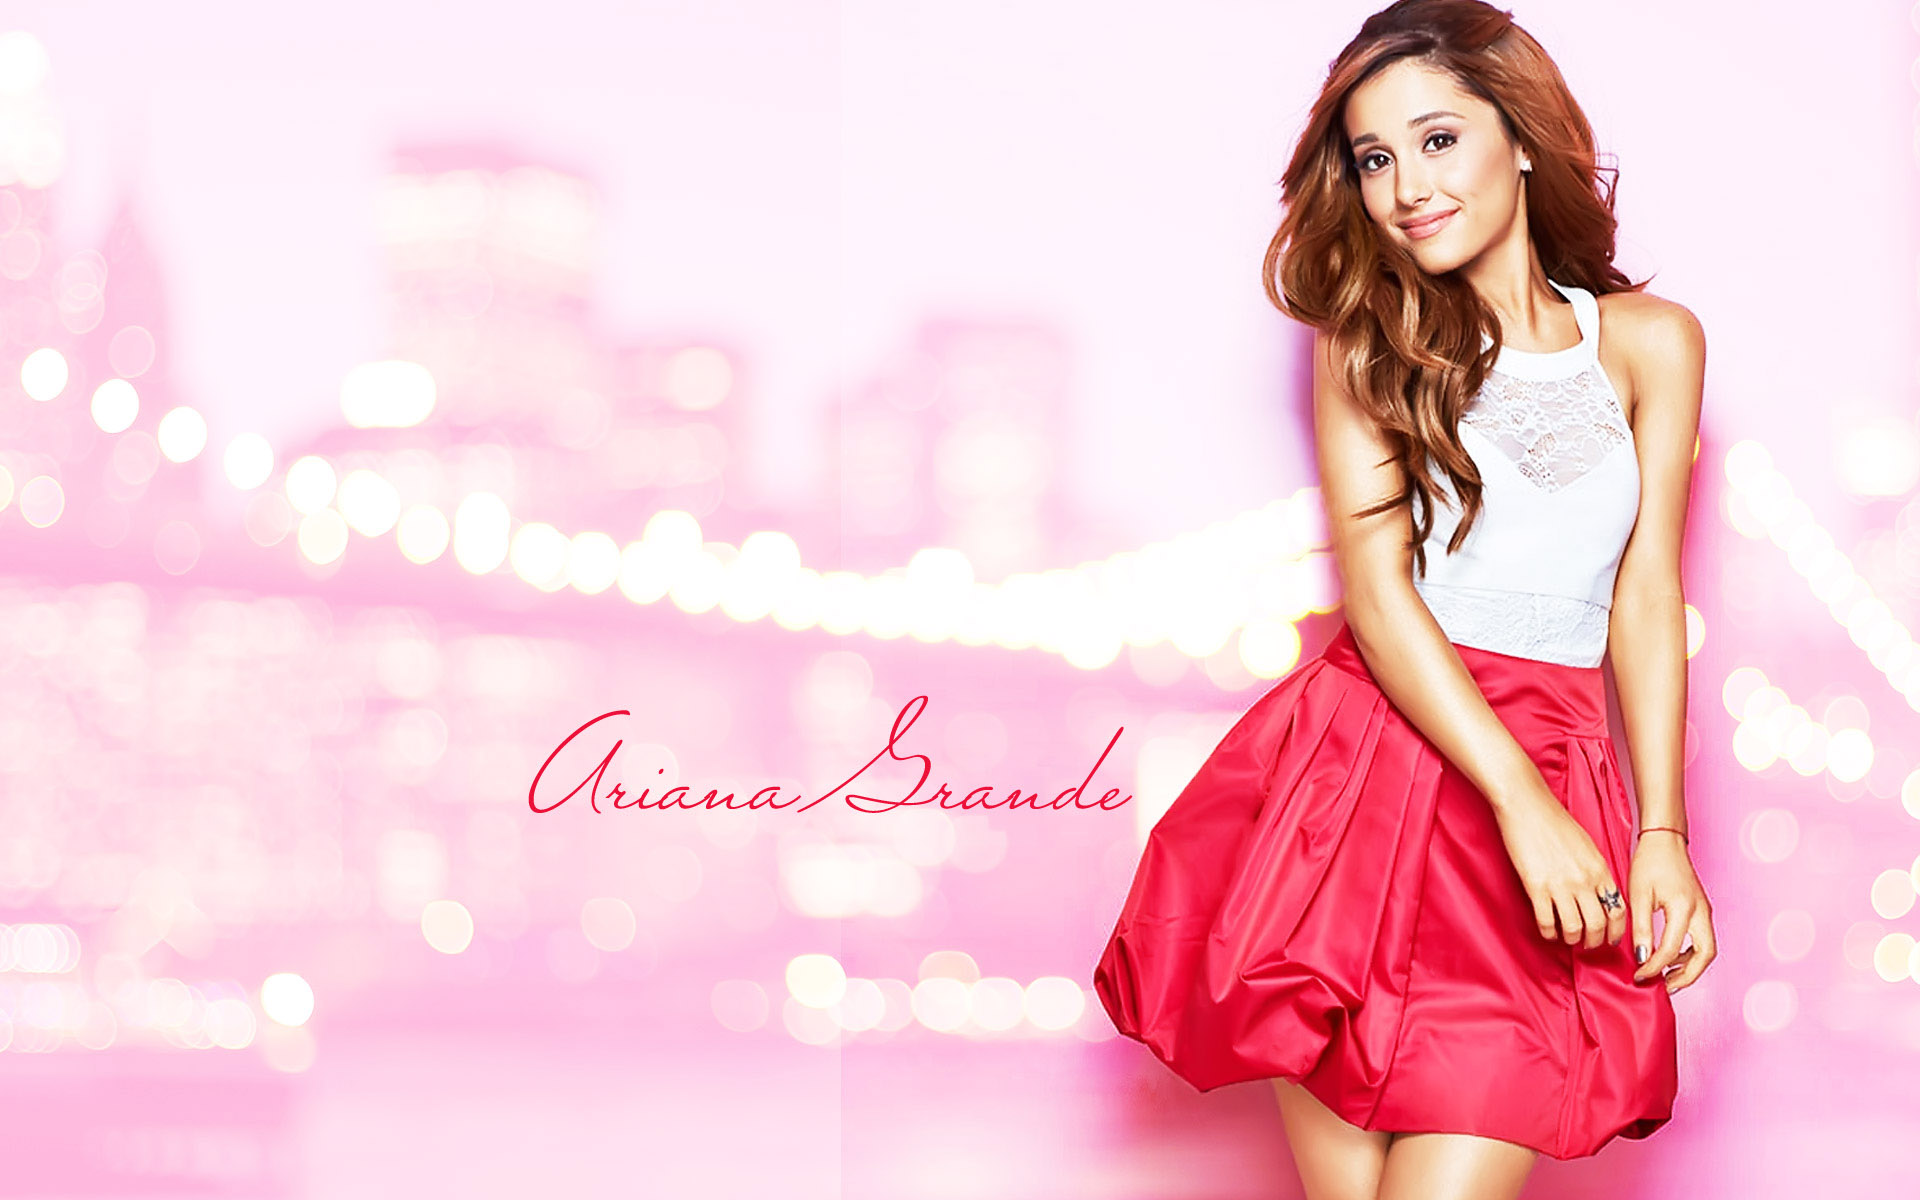 best ariana grande lovely still mobile free download hd background photos